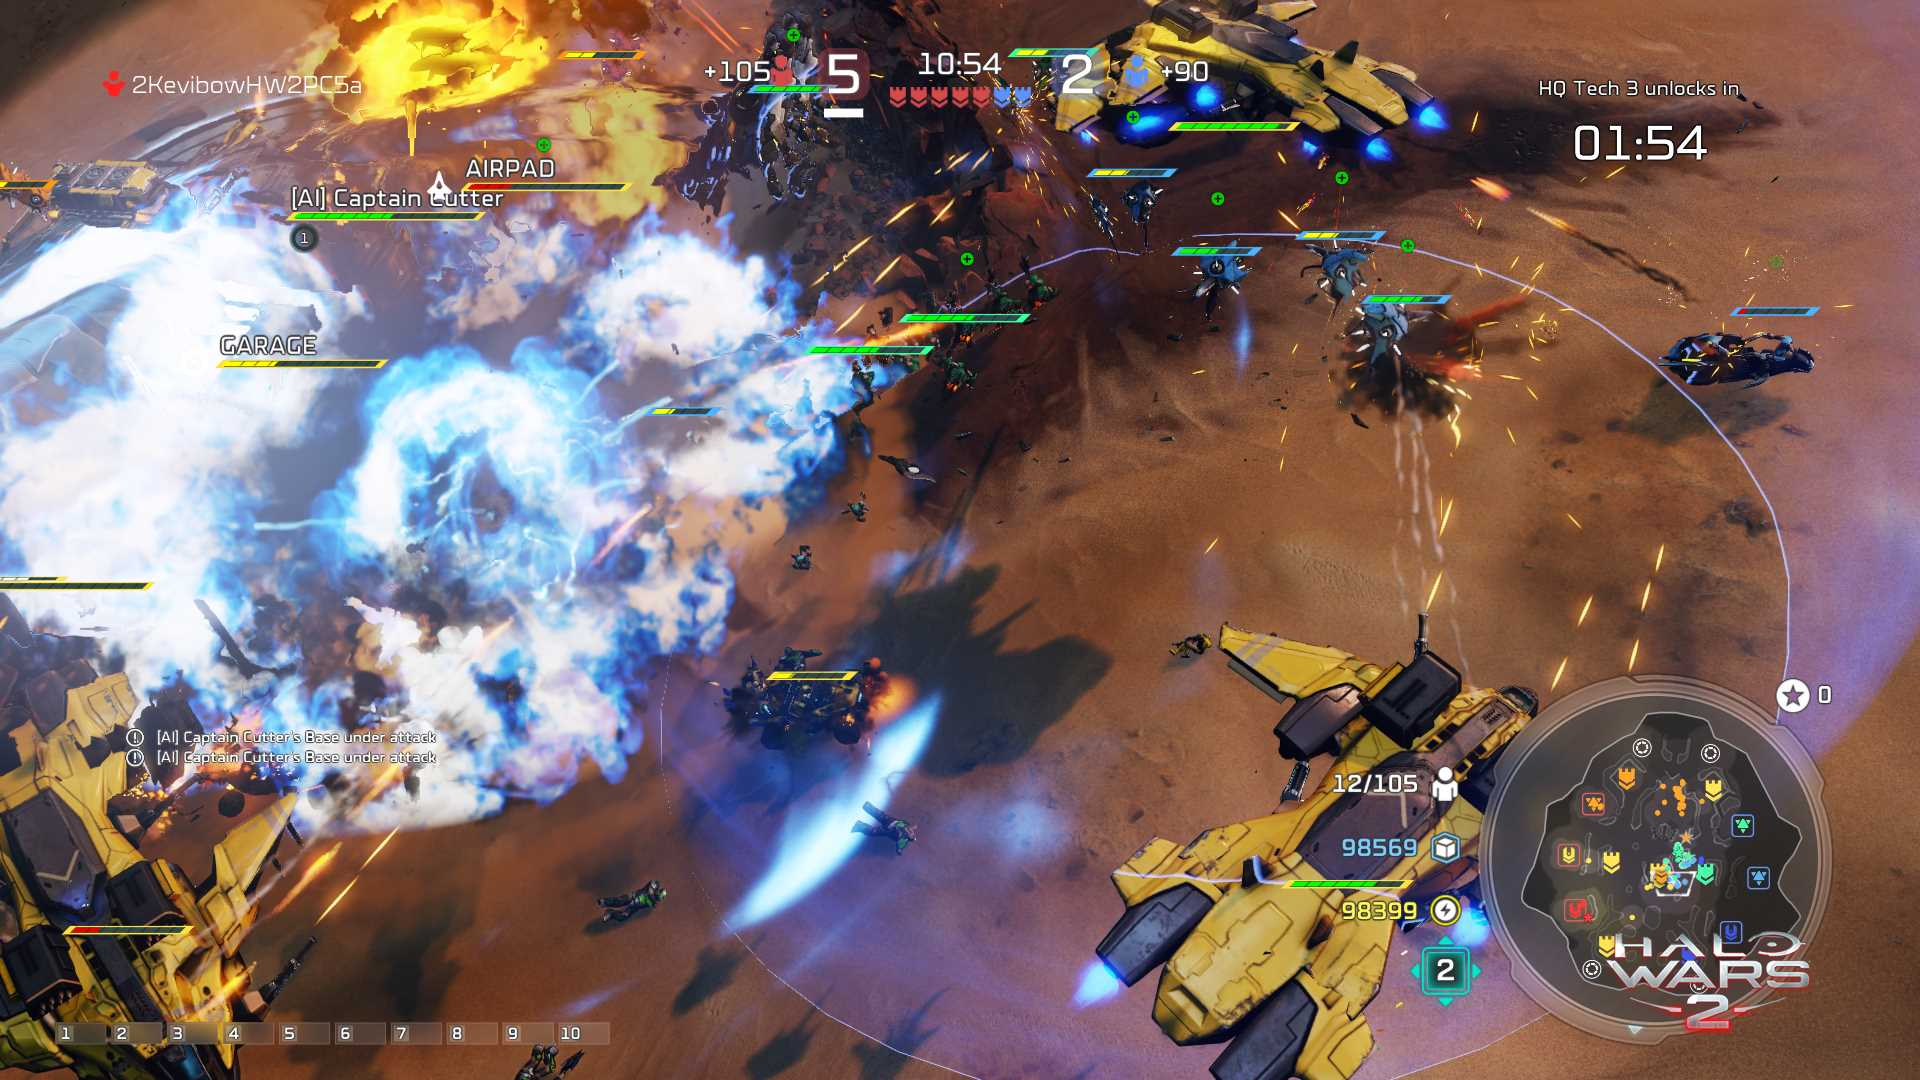 Halo Wars 2 Blitz Mode beta now available on Windows 10